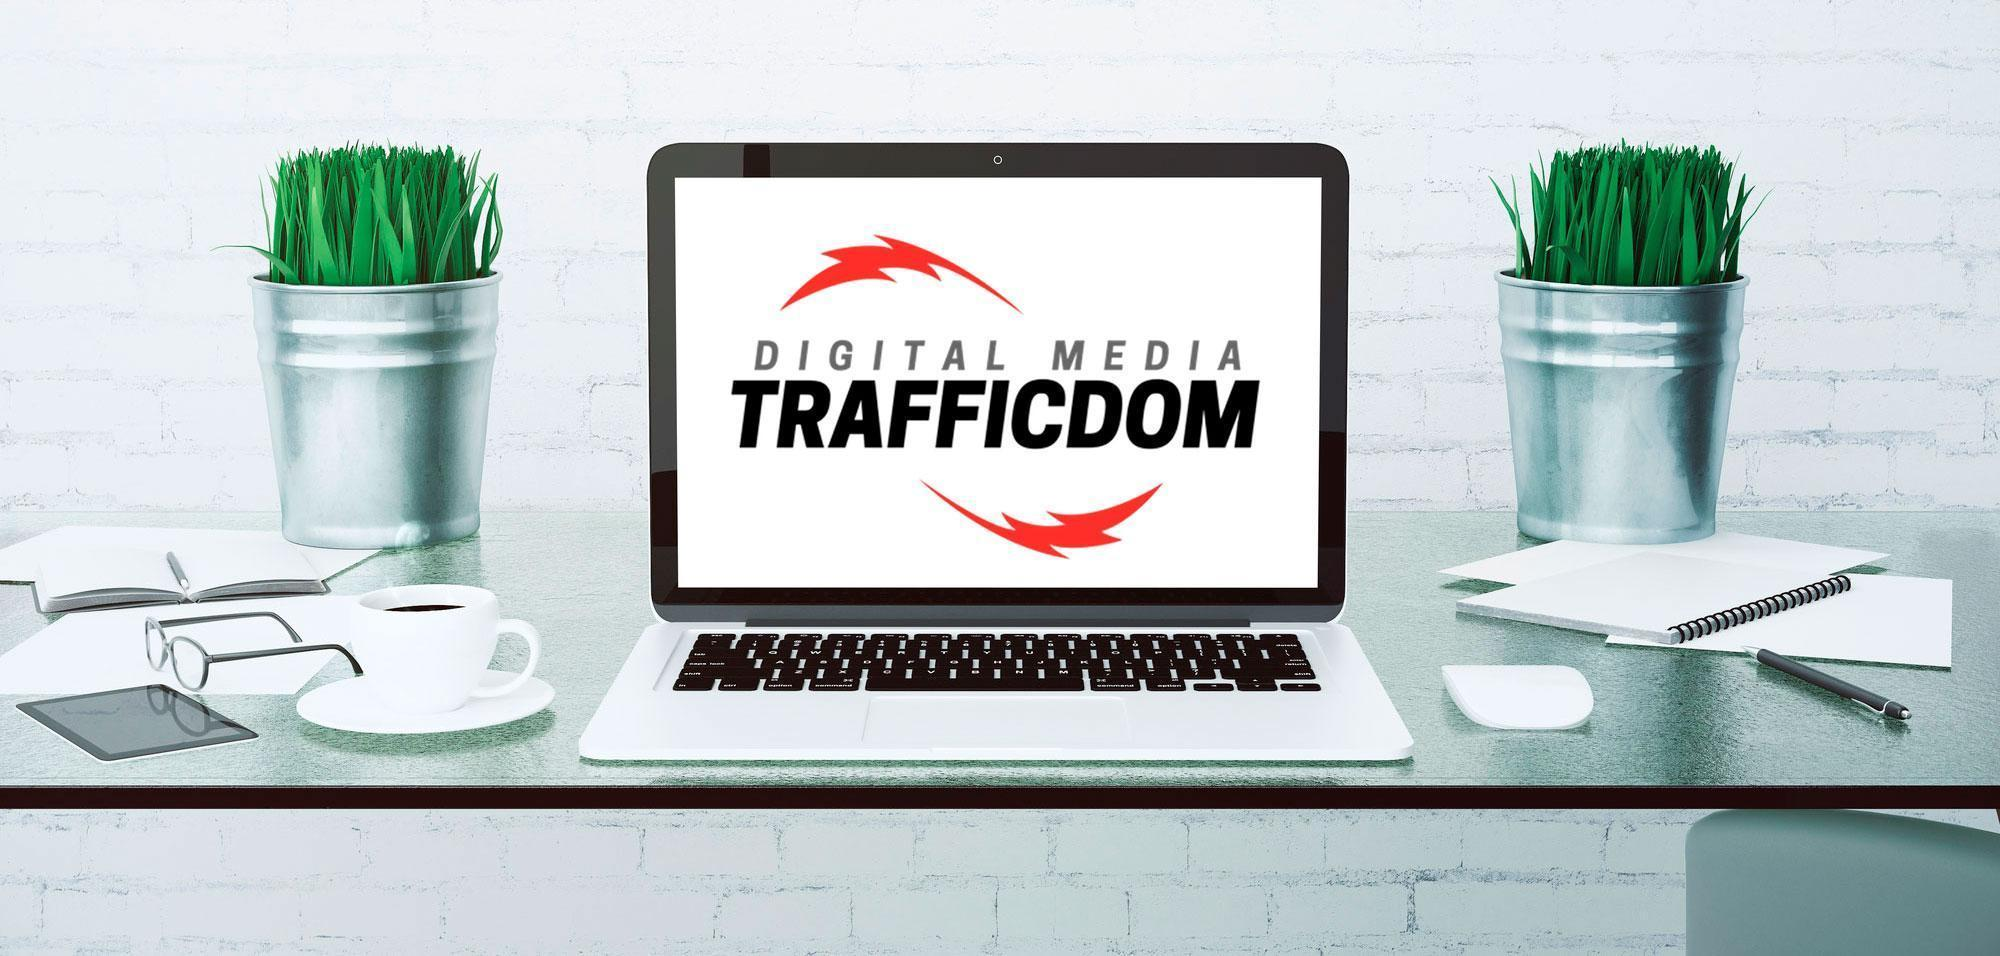 TrafficDom Seo Santa Barbara digital media